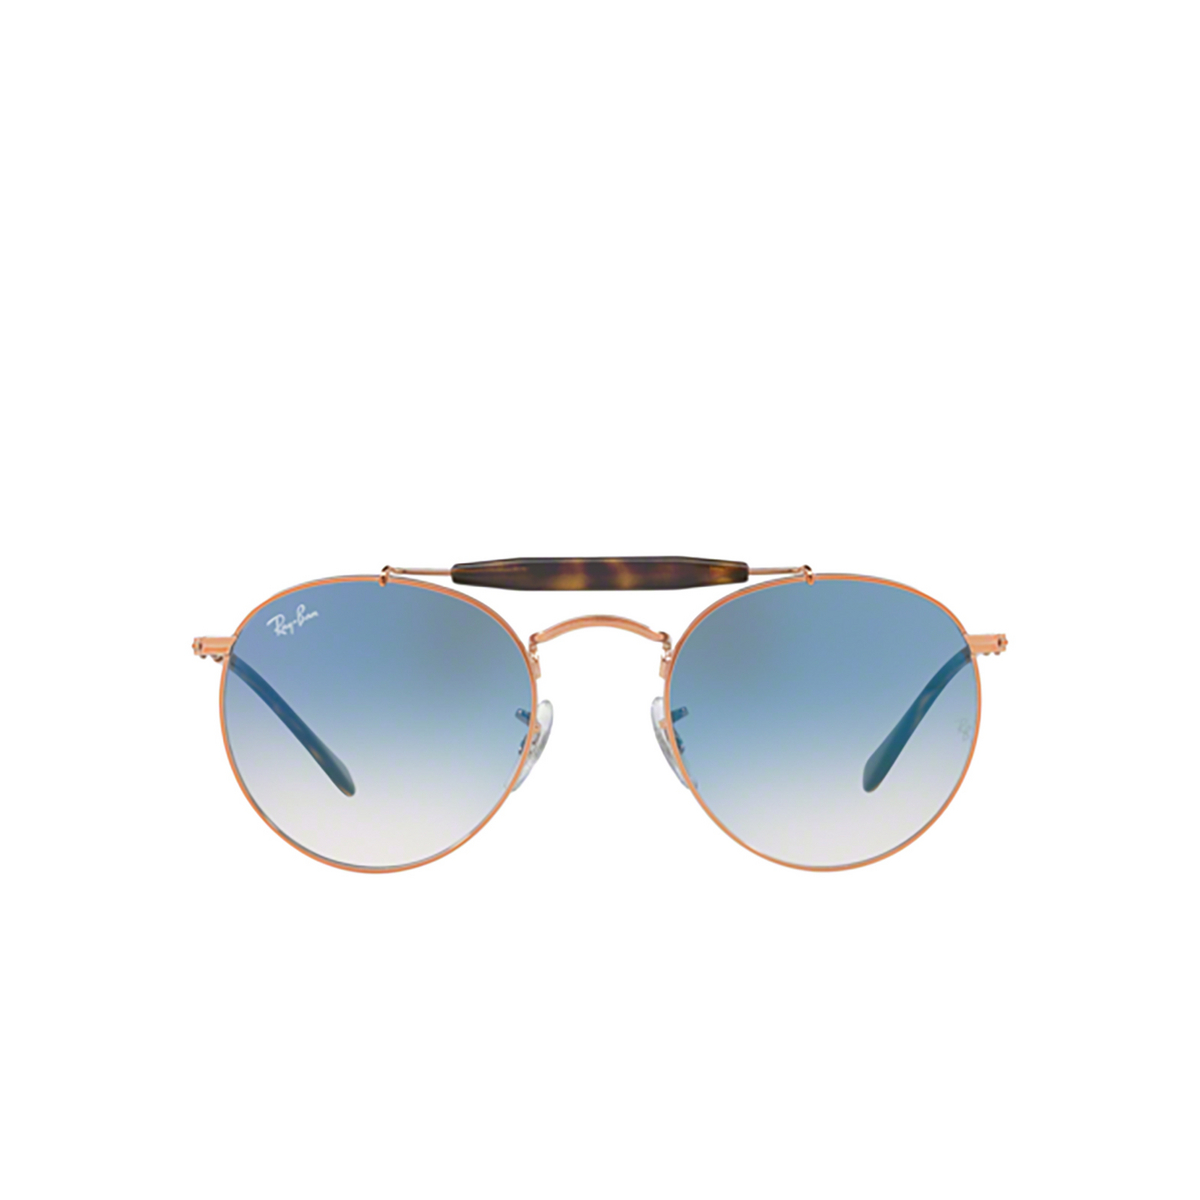 Ray-Ban® Round Sunglasses: RB3747 color 9035/3F - 1/3.